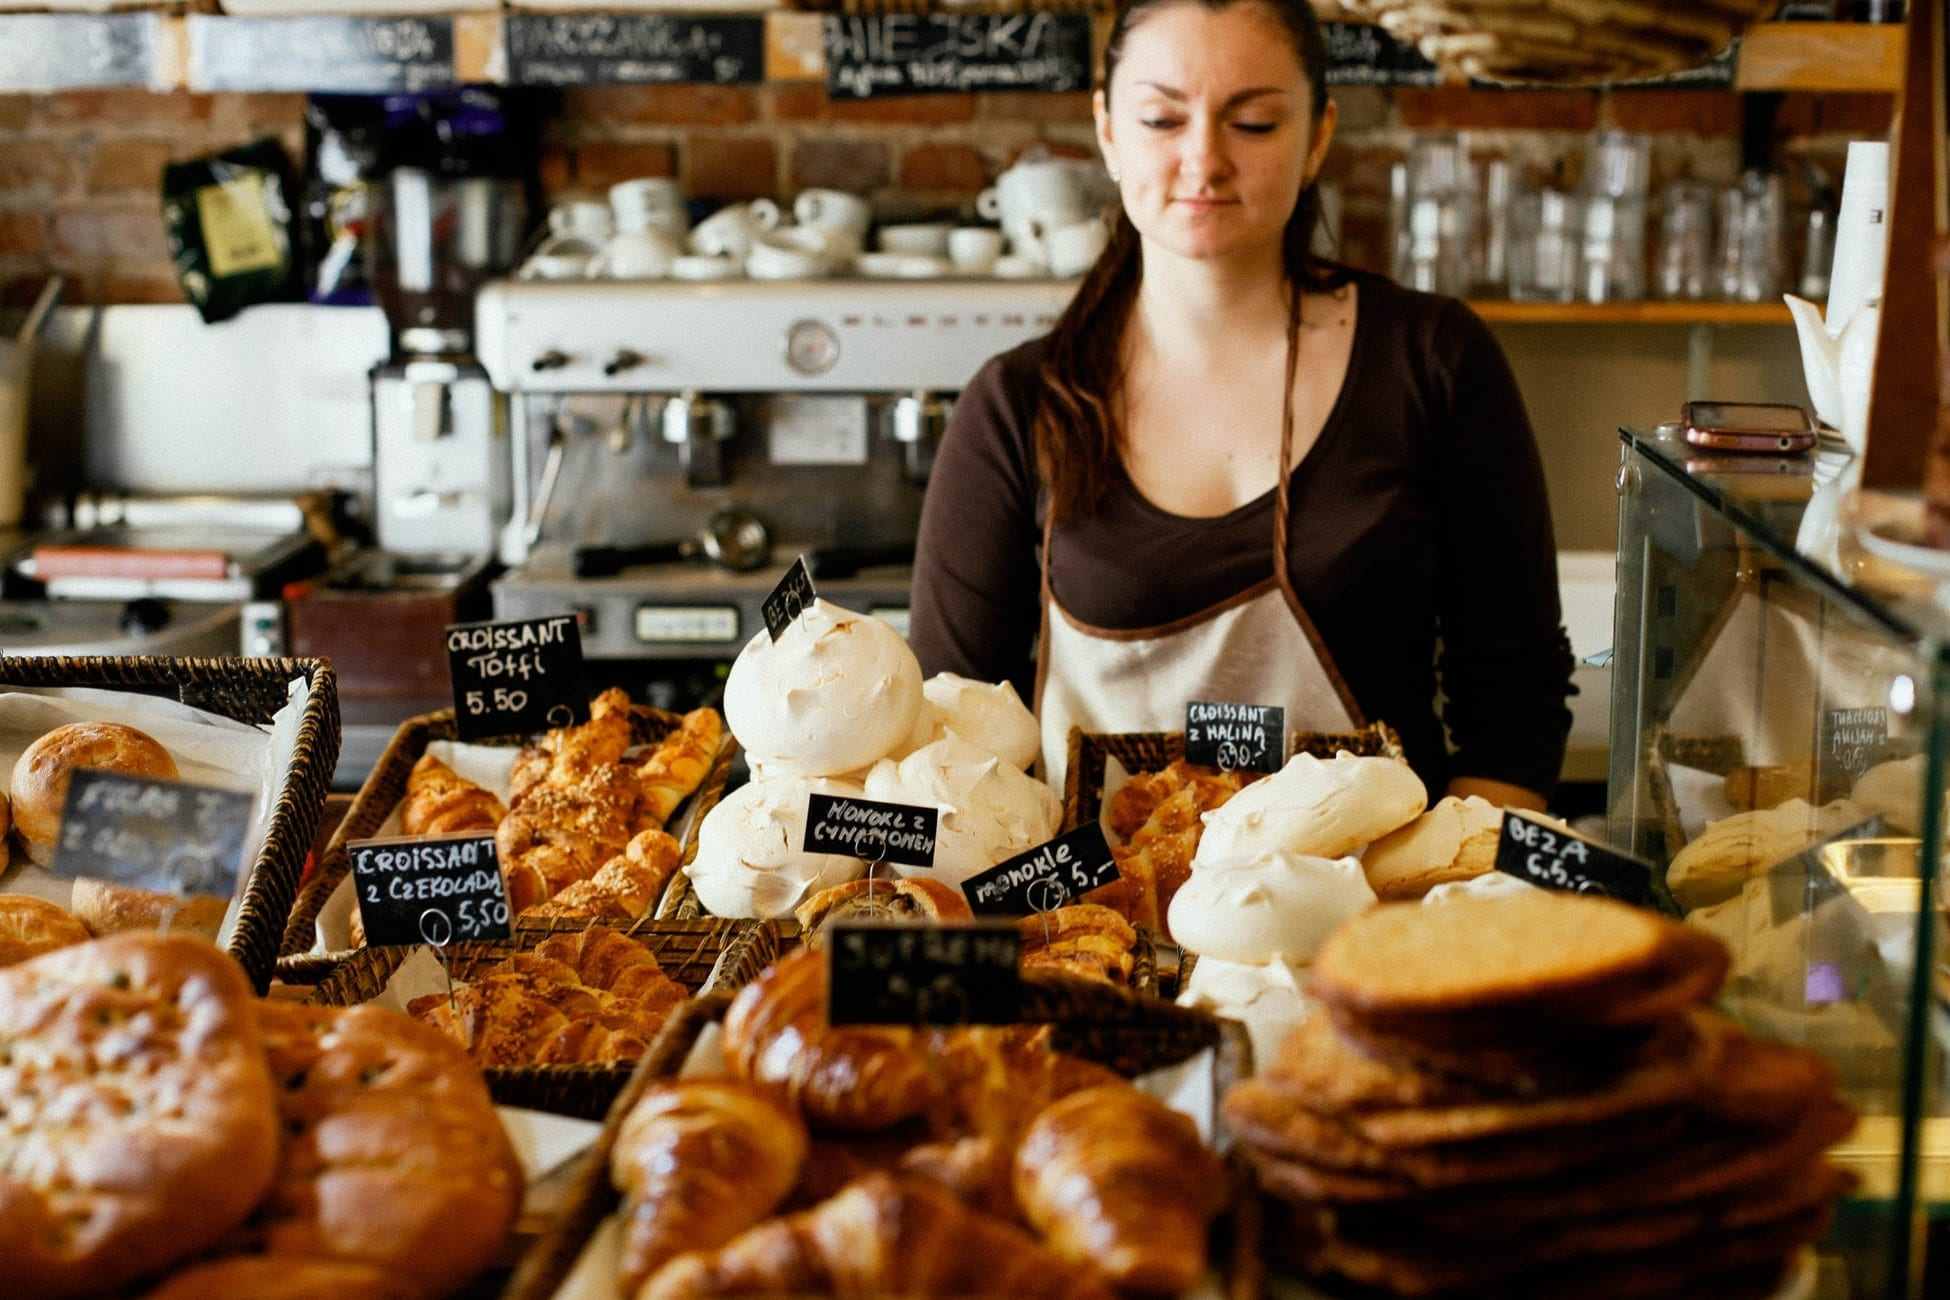 A woman standing behind a bakery counter